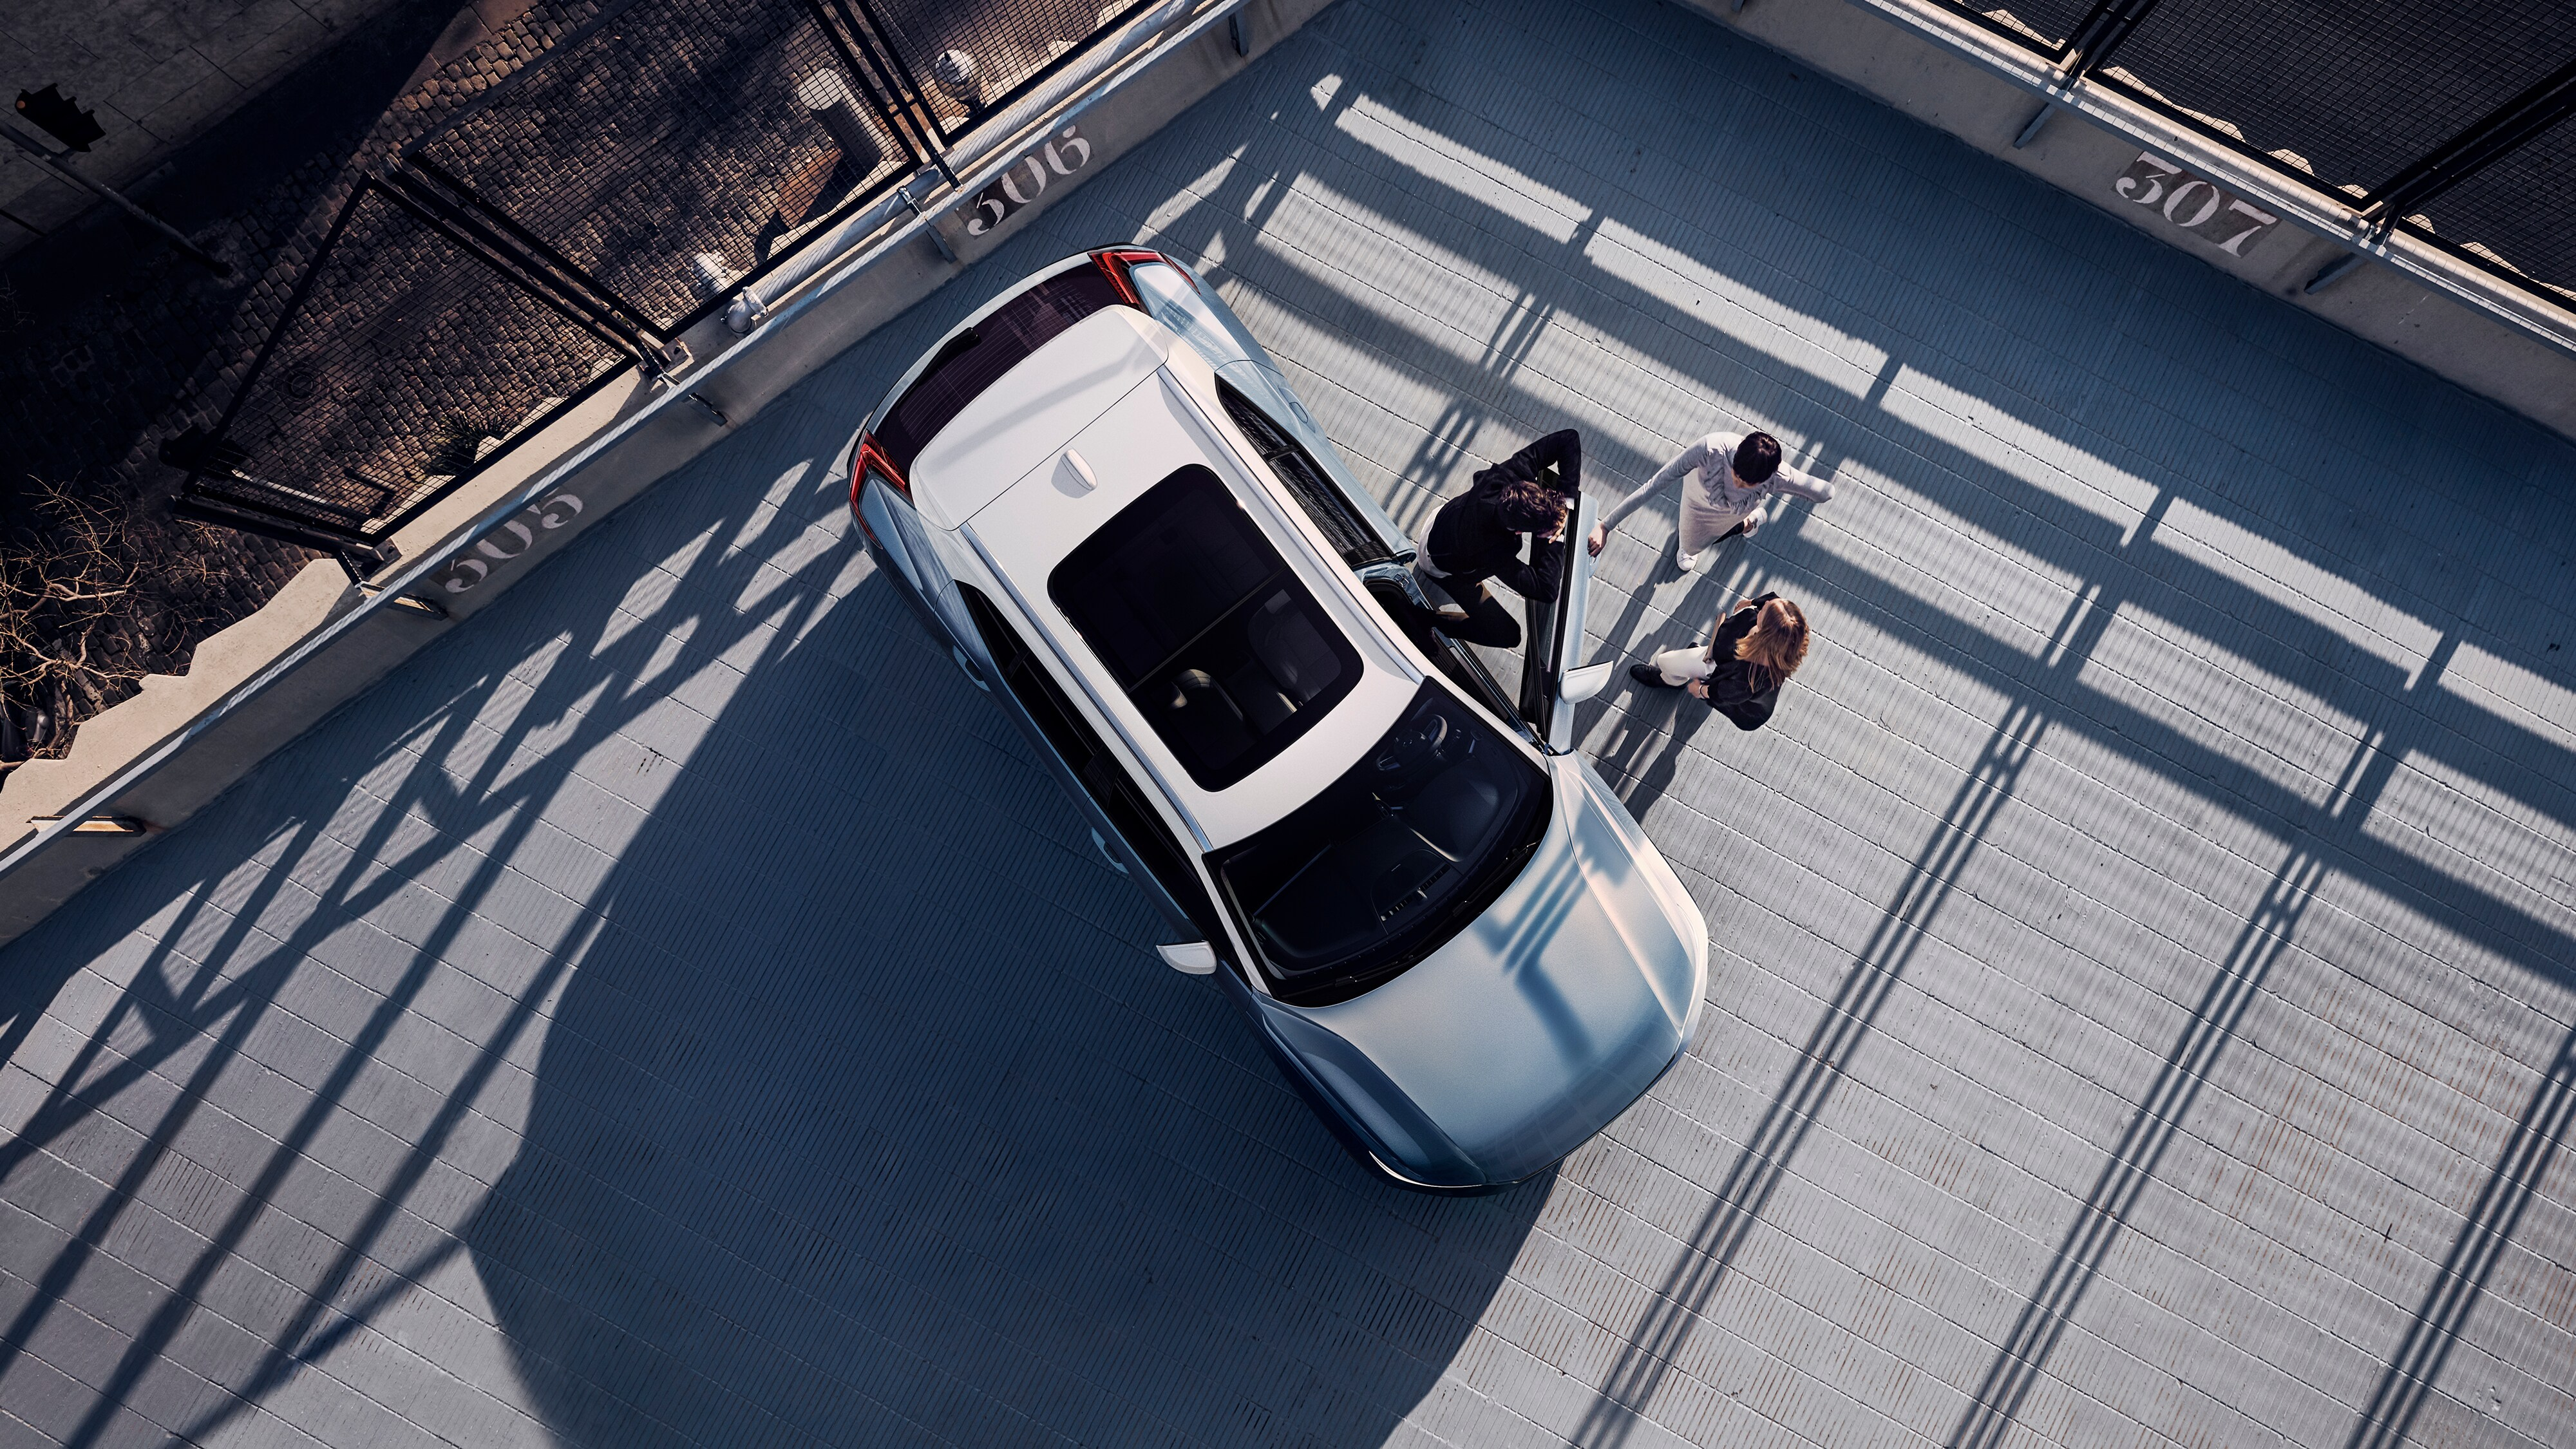 Top-down view of the Volvo XC40 R-Design parked on a roof